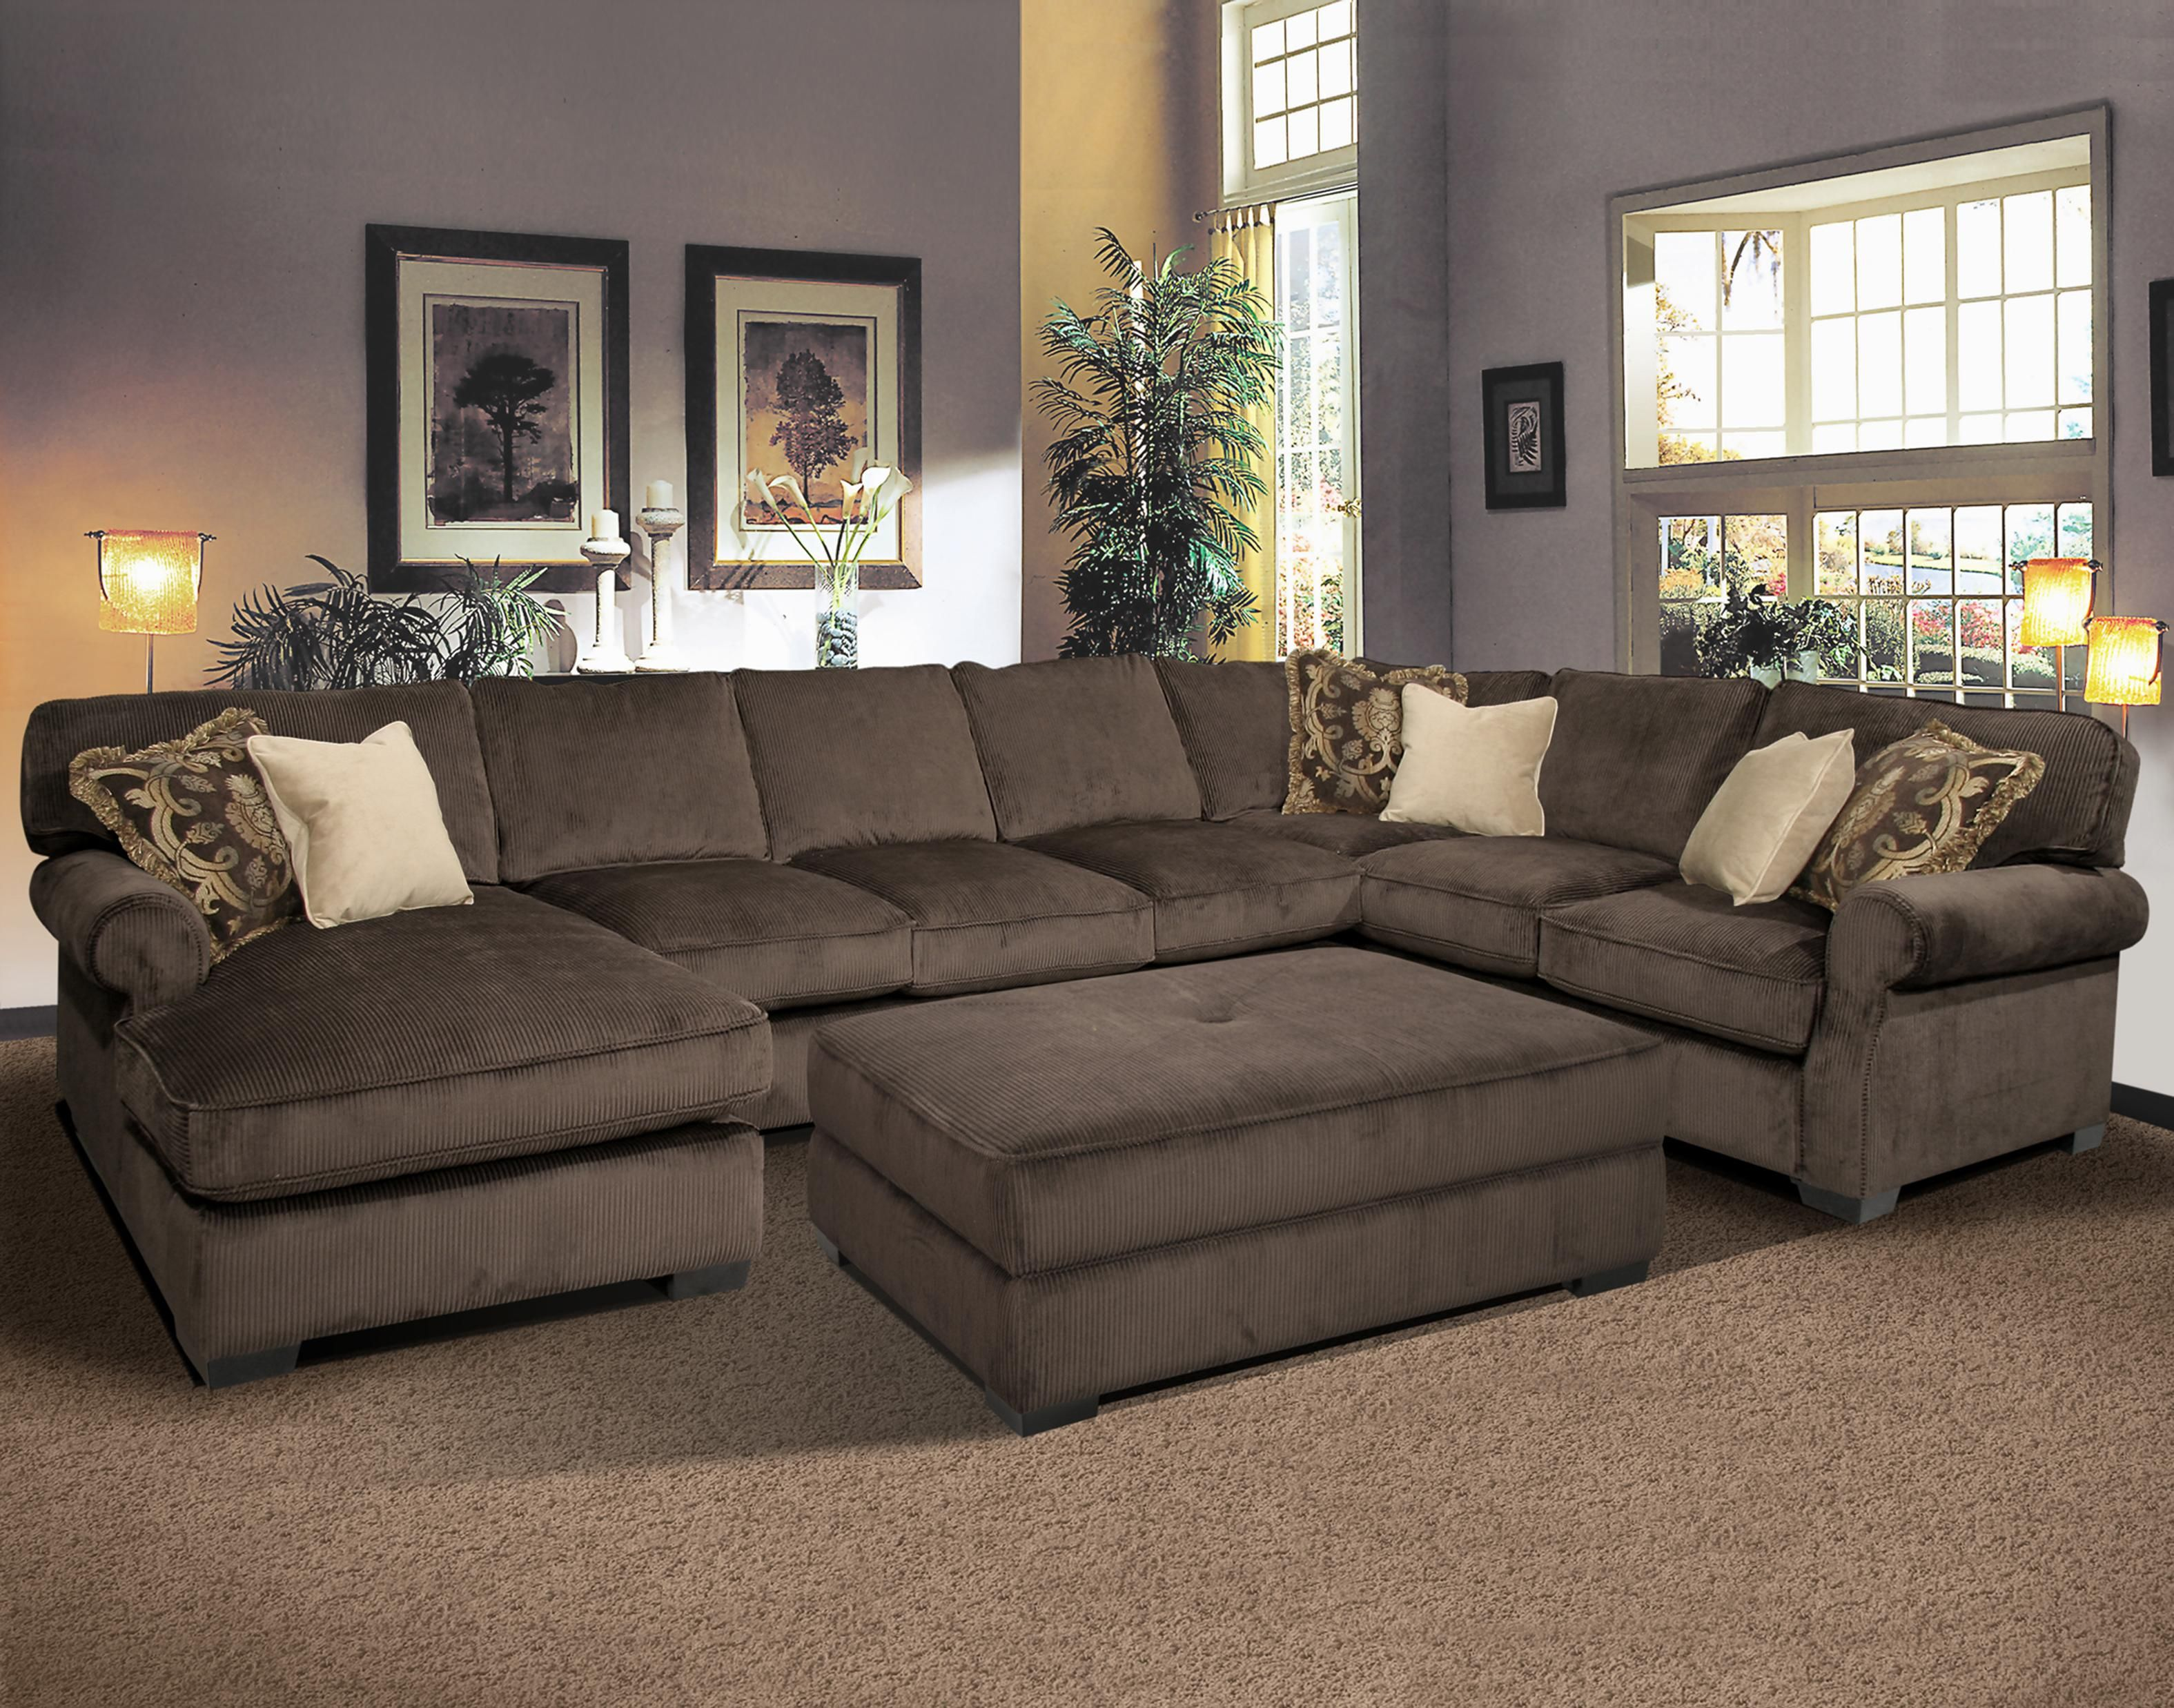 Grand Island Oversized Cocktail Ottoman for Sectional Sofa by Fairmont Seating - Ruby Gordon Home Furnishings : couch sectional - Sectionals, Sofas & Couches